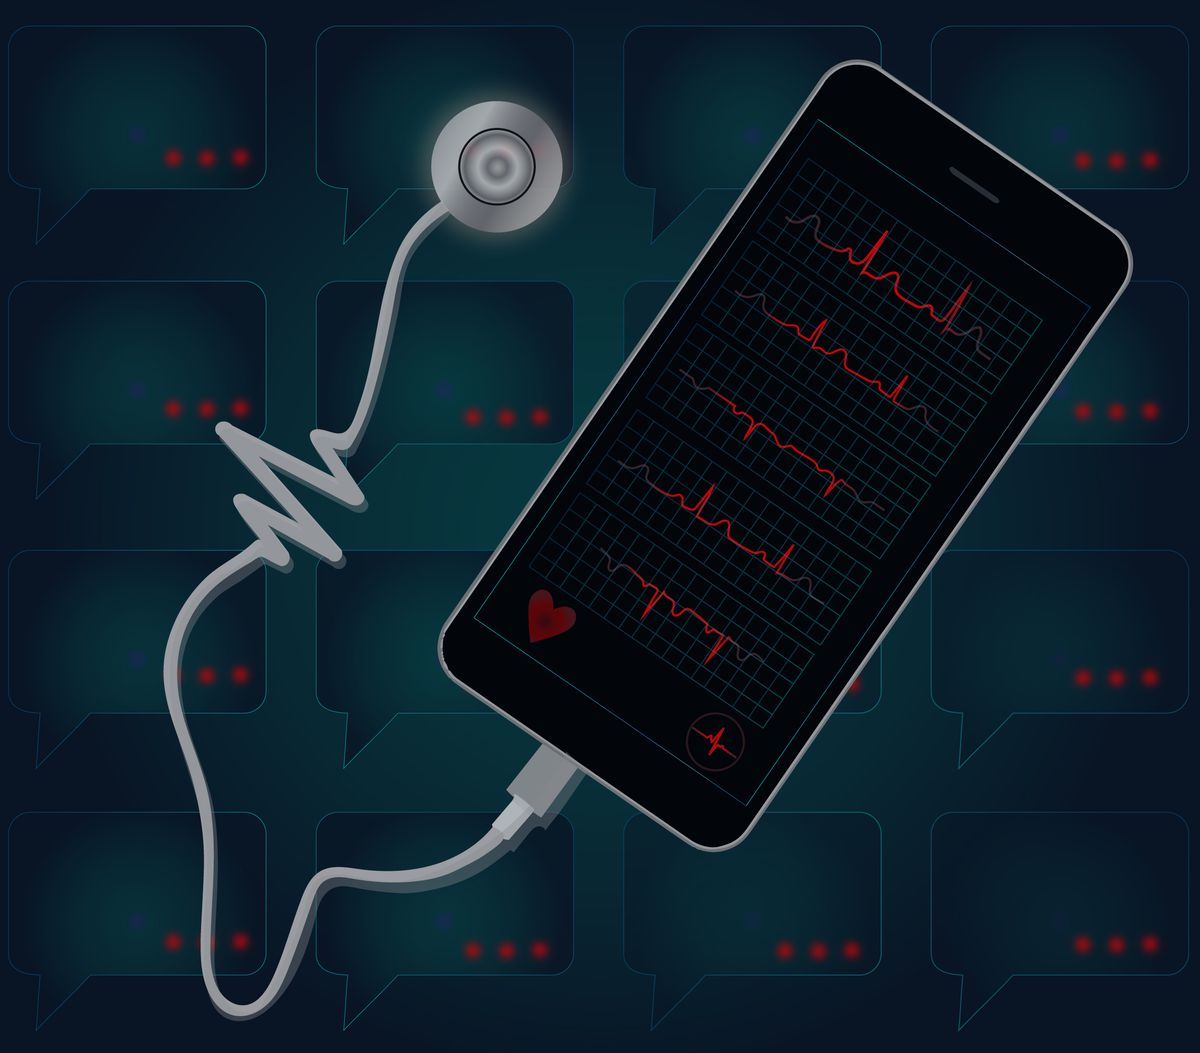 An illustration of a stethoscope attached to a cell phone.